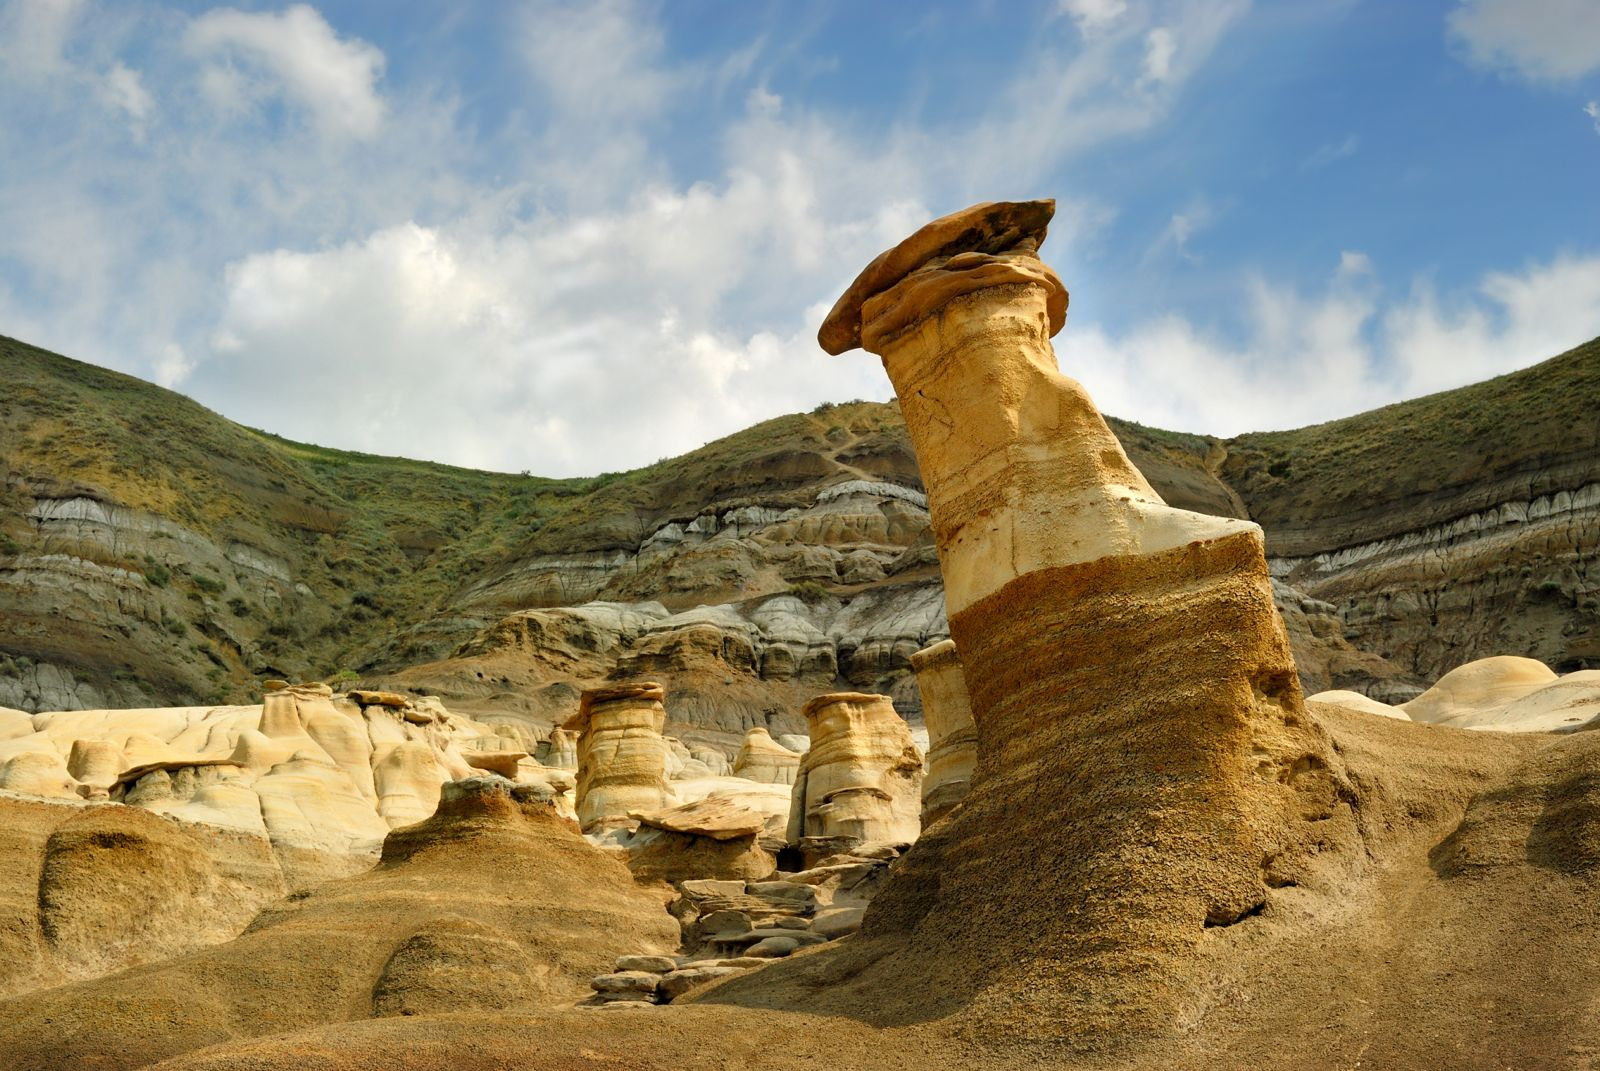 GERMAN-FRENCH CULTURE CHANNEL TO FEATURE DOCUMENTARY ABOUT THE BADLANDS